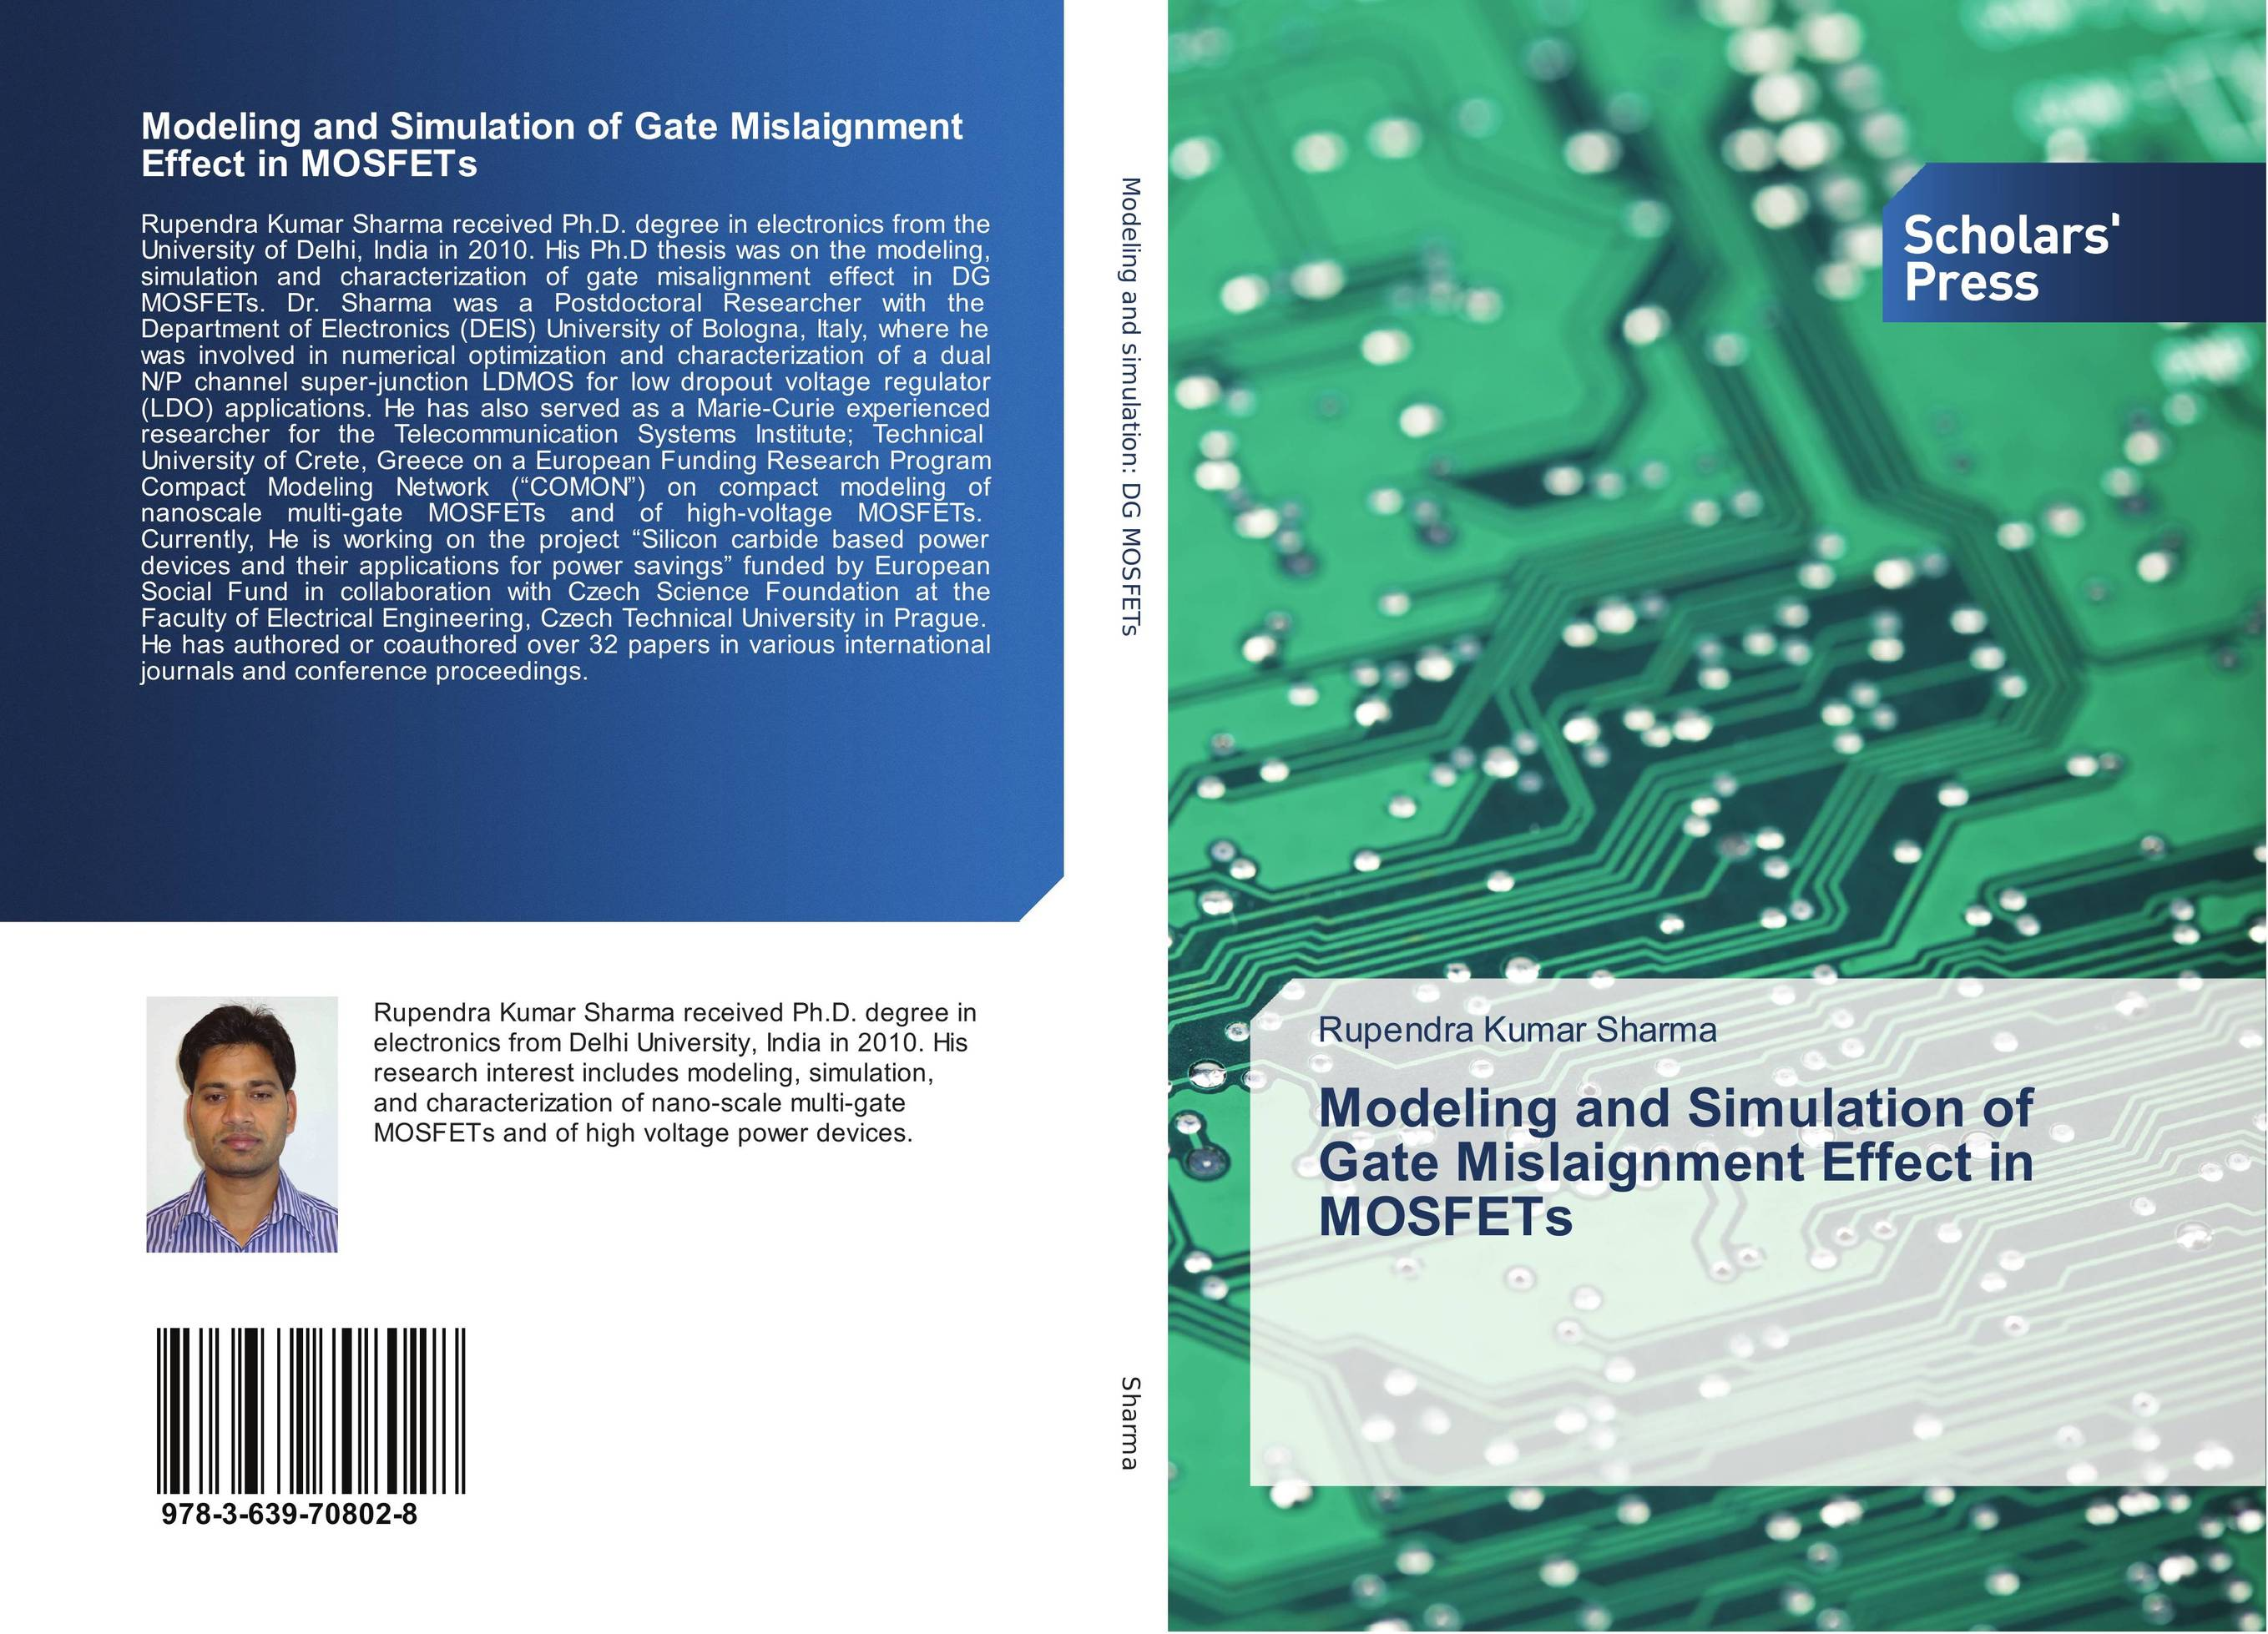 Modeling and Simulation of Gate Mislaignment Effect in MOSFETs сборник статей science and life proceedings of articles the international scientific conference czech republic karlovy vary – russia moscow 28–29 april 2016